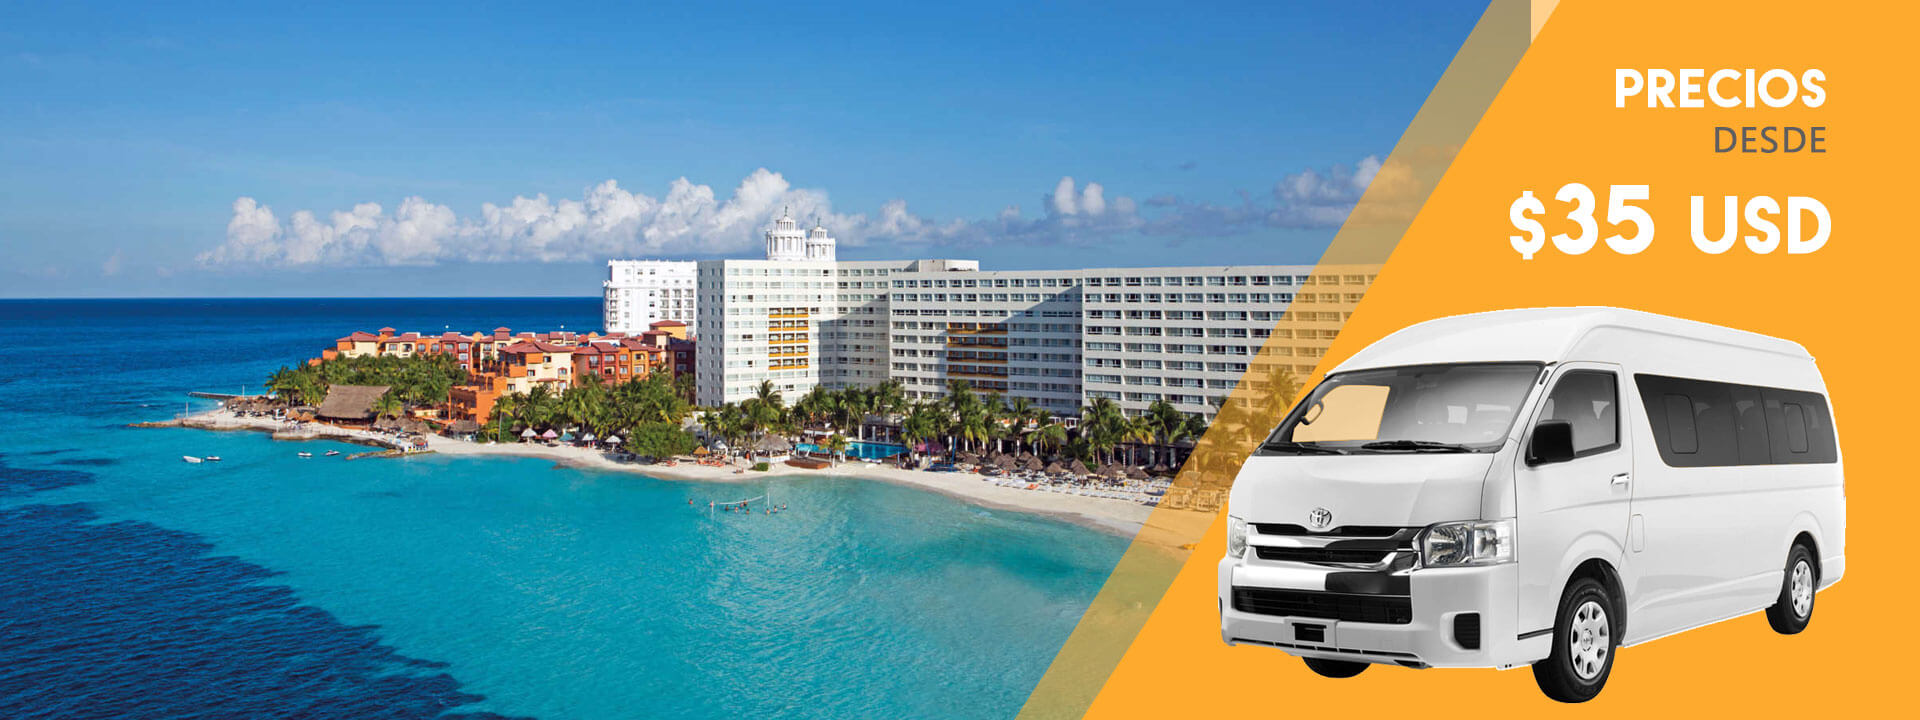 Cancun Airport Transportation à partir de 35USD